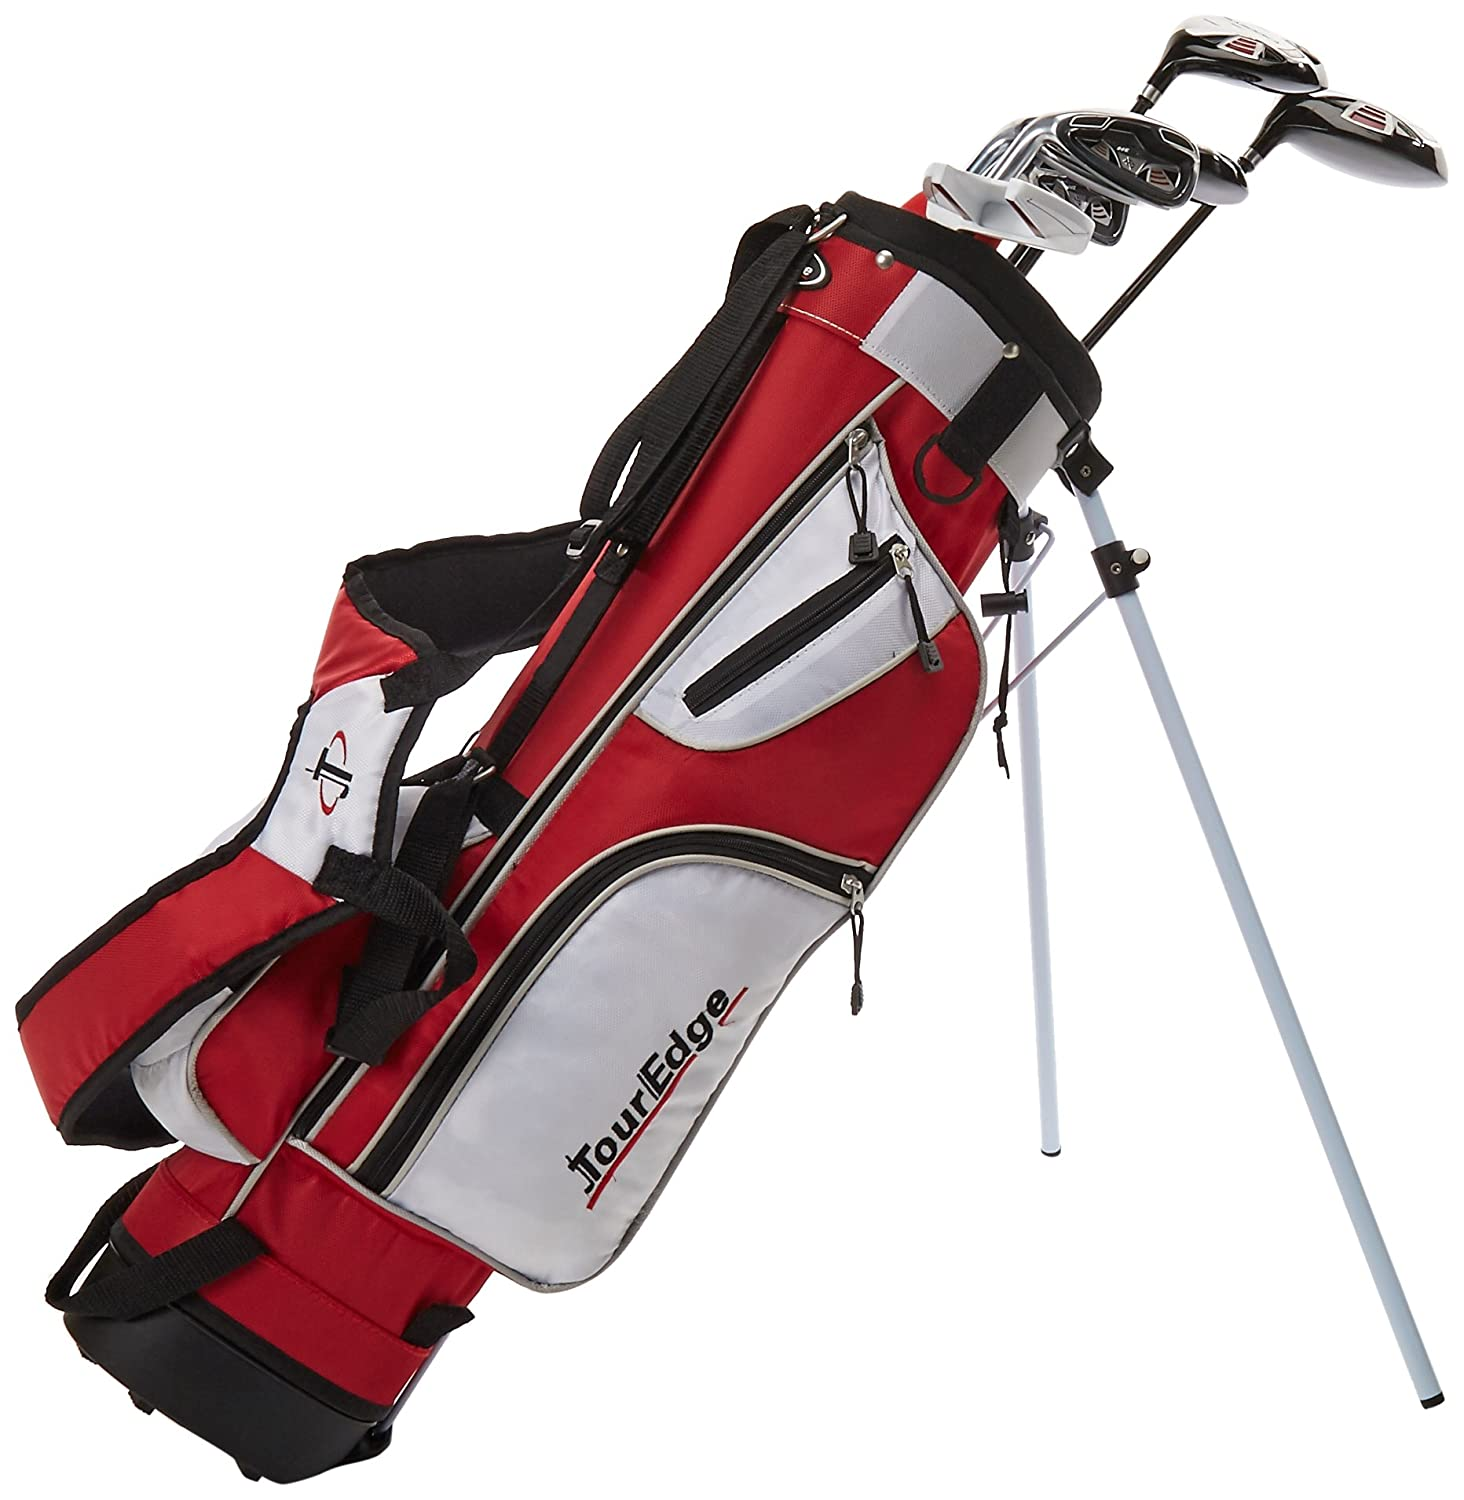 Tour Edge HT Max-J Set (Junior's, Ages 9-12, 7 Club Set, Left Handed, with Bag) SS-SMS-1001544